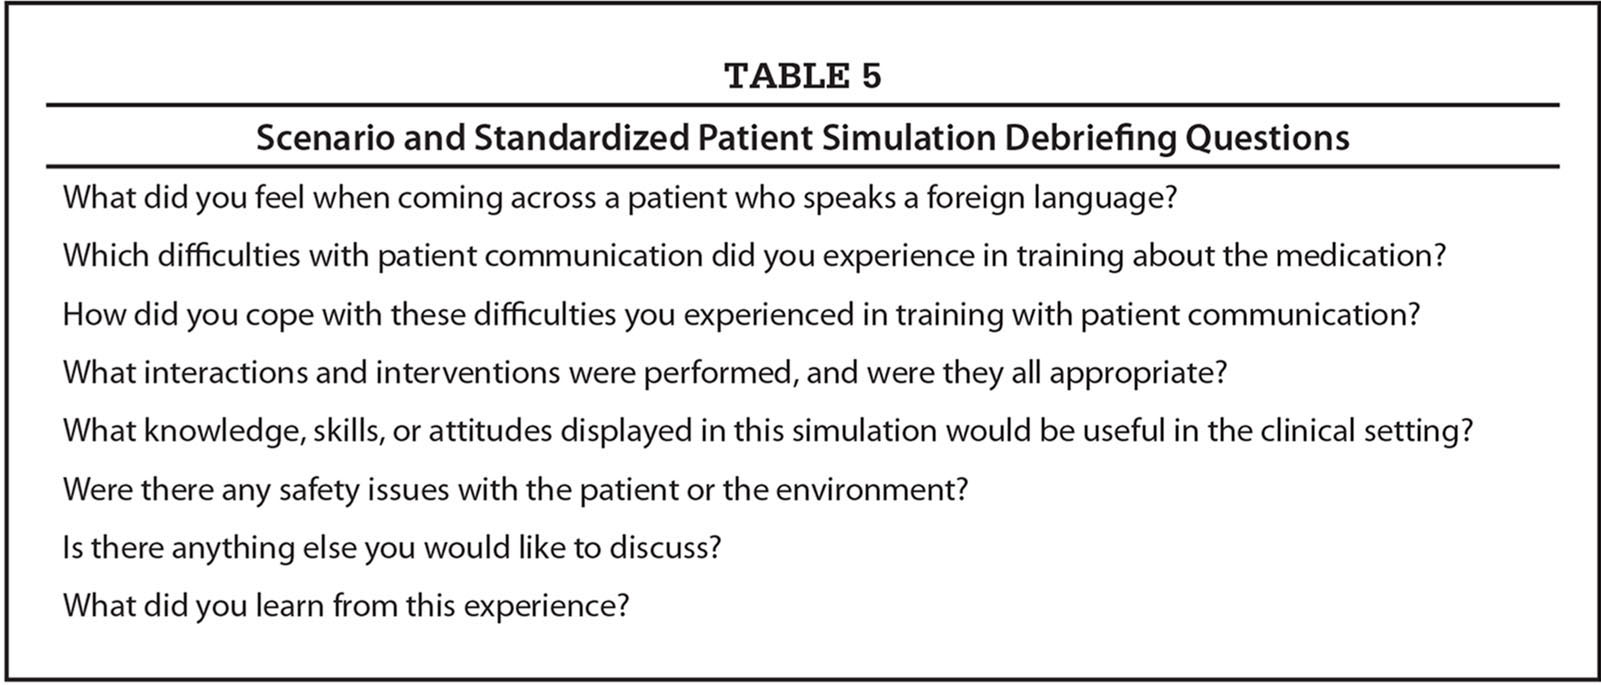 Scenario and Standardized Patient Simulation Debriefing Questions